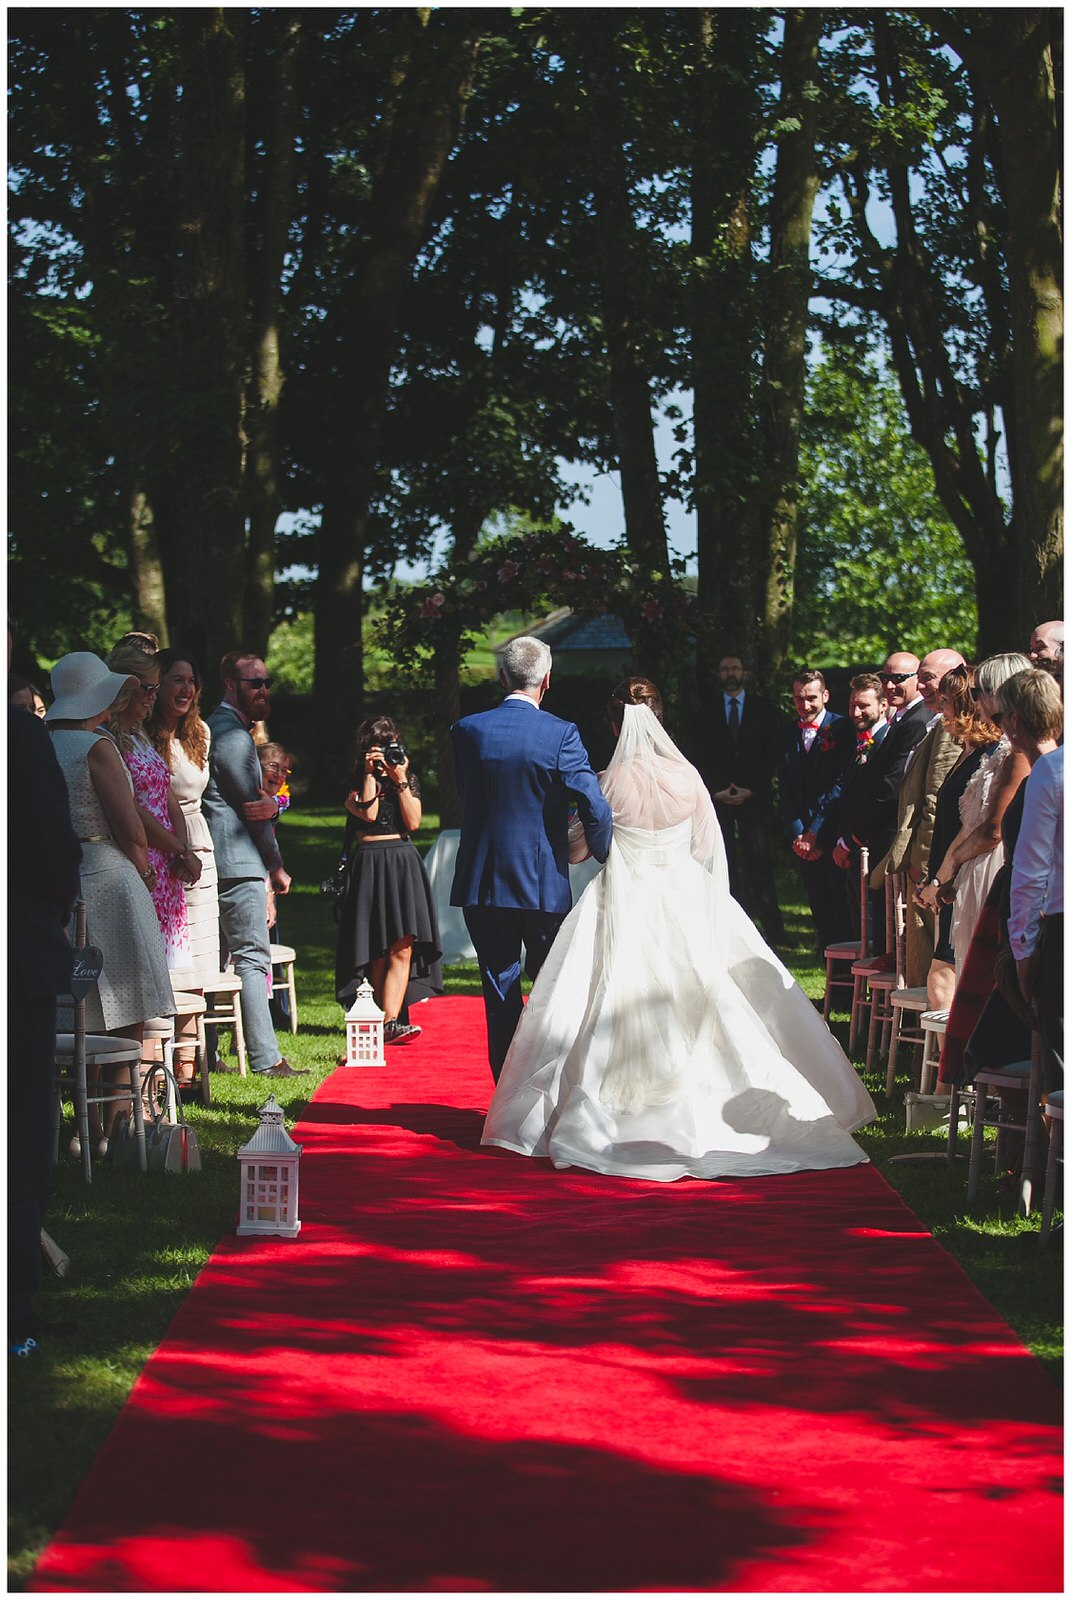 The back of the brides dress as she walks down the aisle